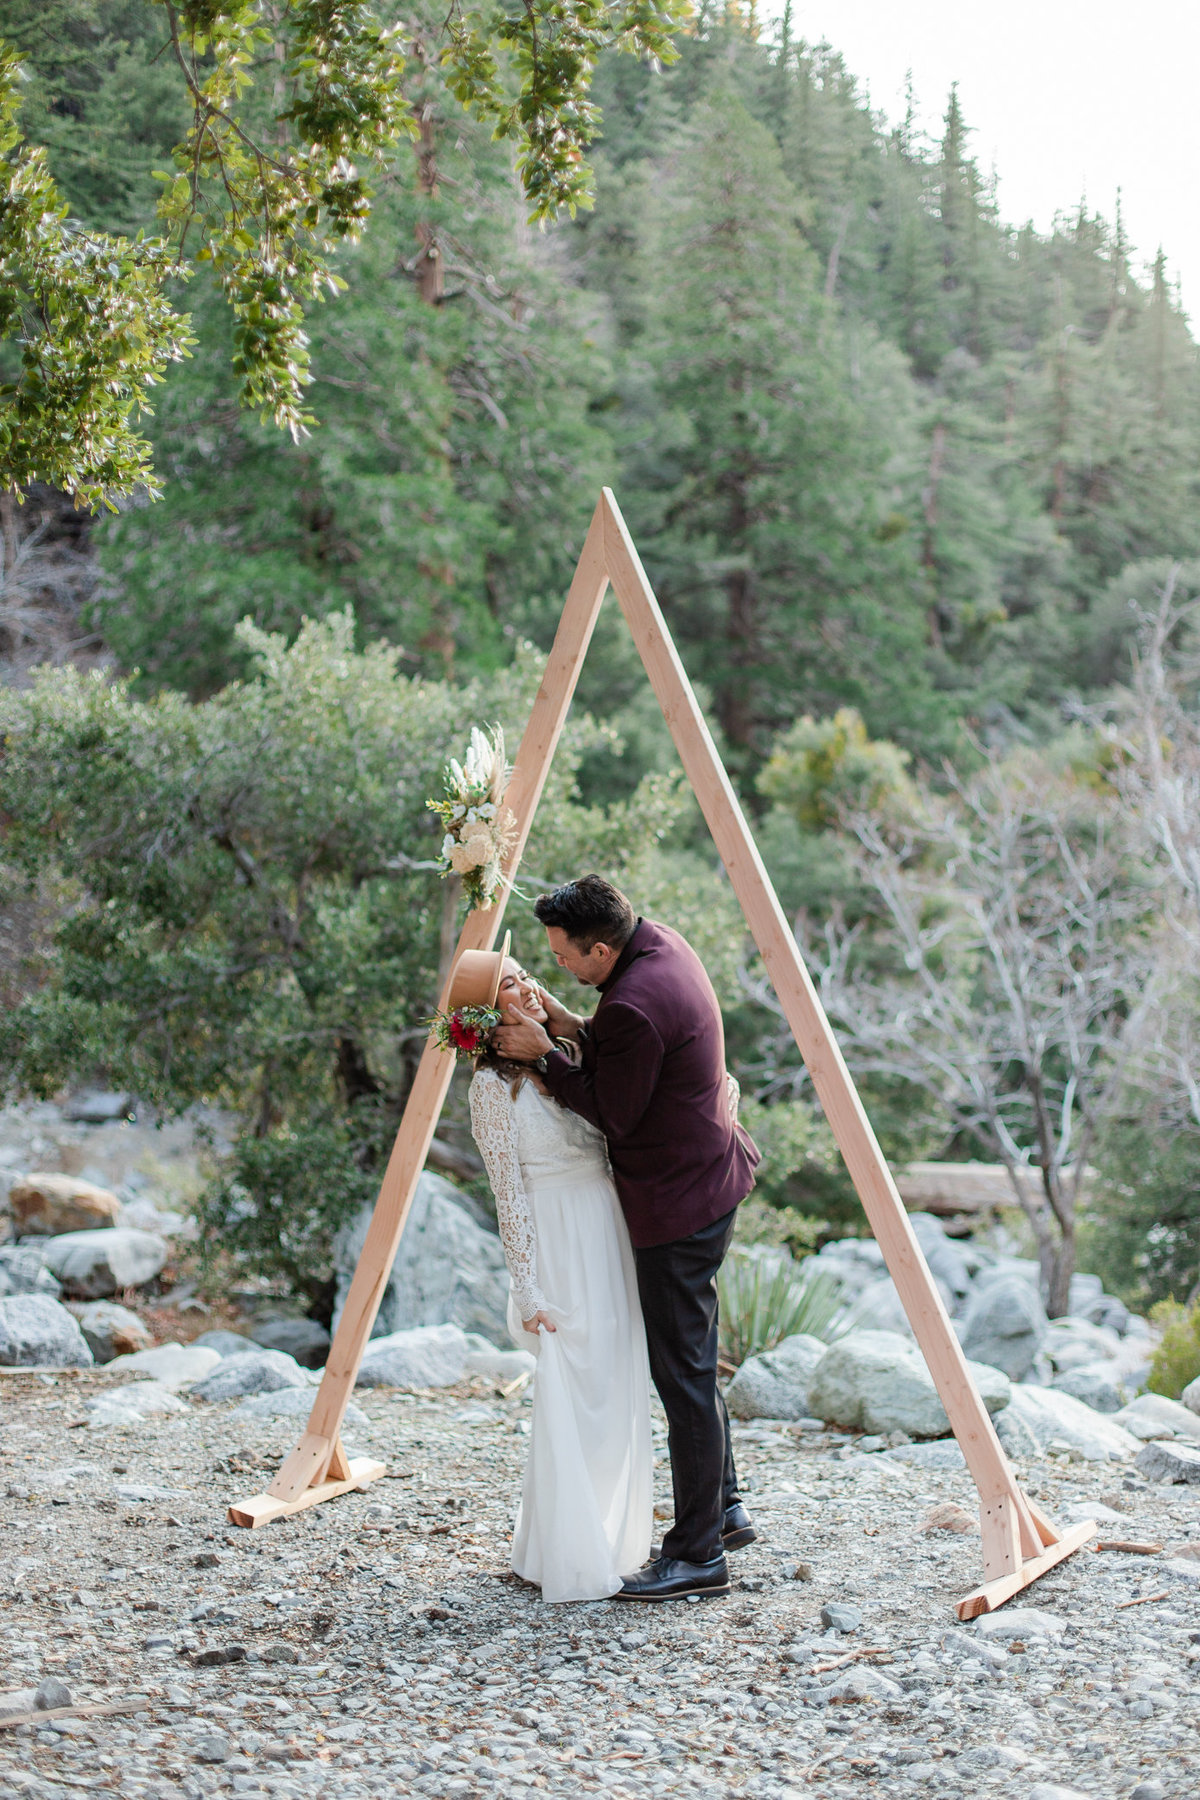 Mt. Baldy Elopement, Mt. Baldy Styled Shoot, Mt. Baldy Wedding, Forest Elopement, Forest Wedding, Boho Wedding, Boho Elopement, Mt. Baldy Boho, Forest Boho, Woodland Boho-45